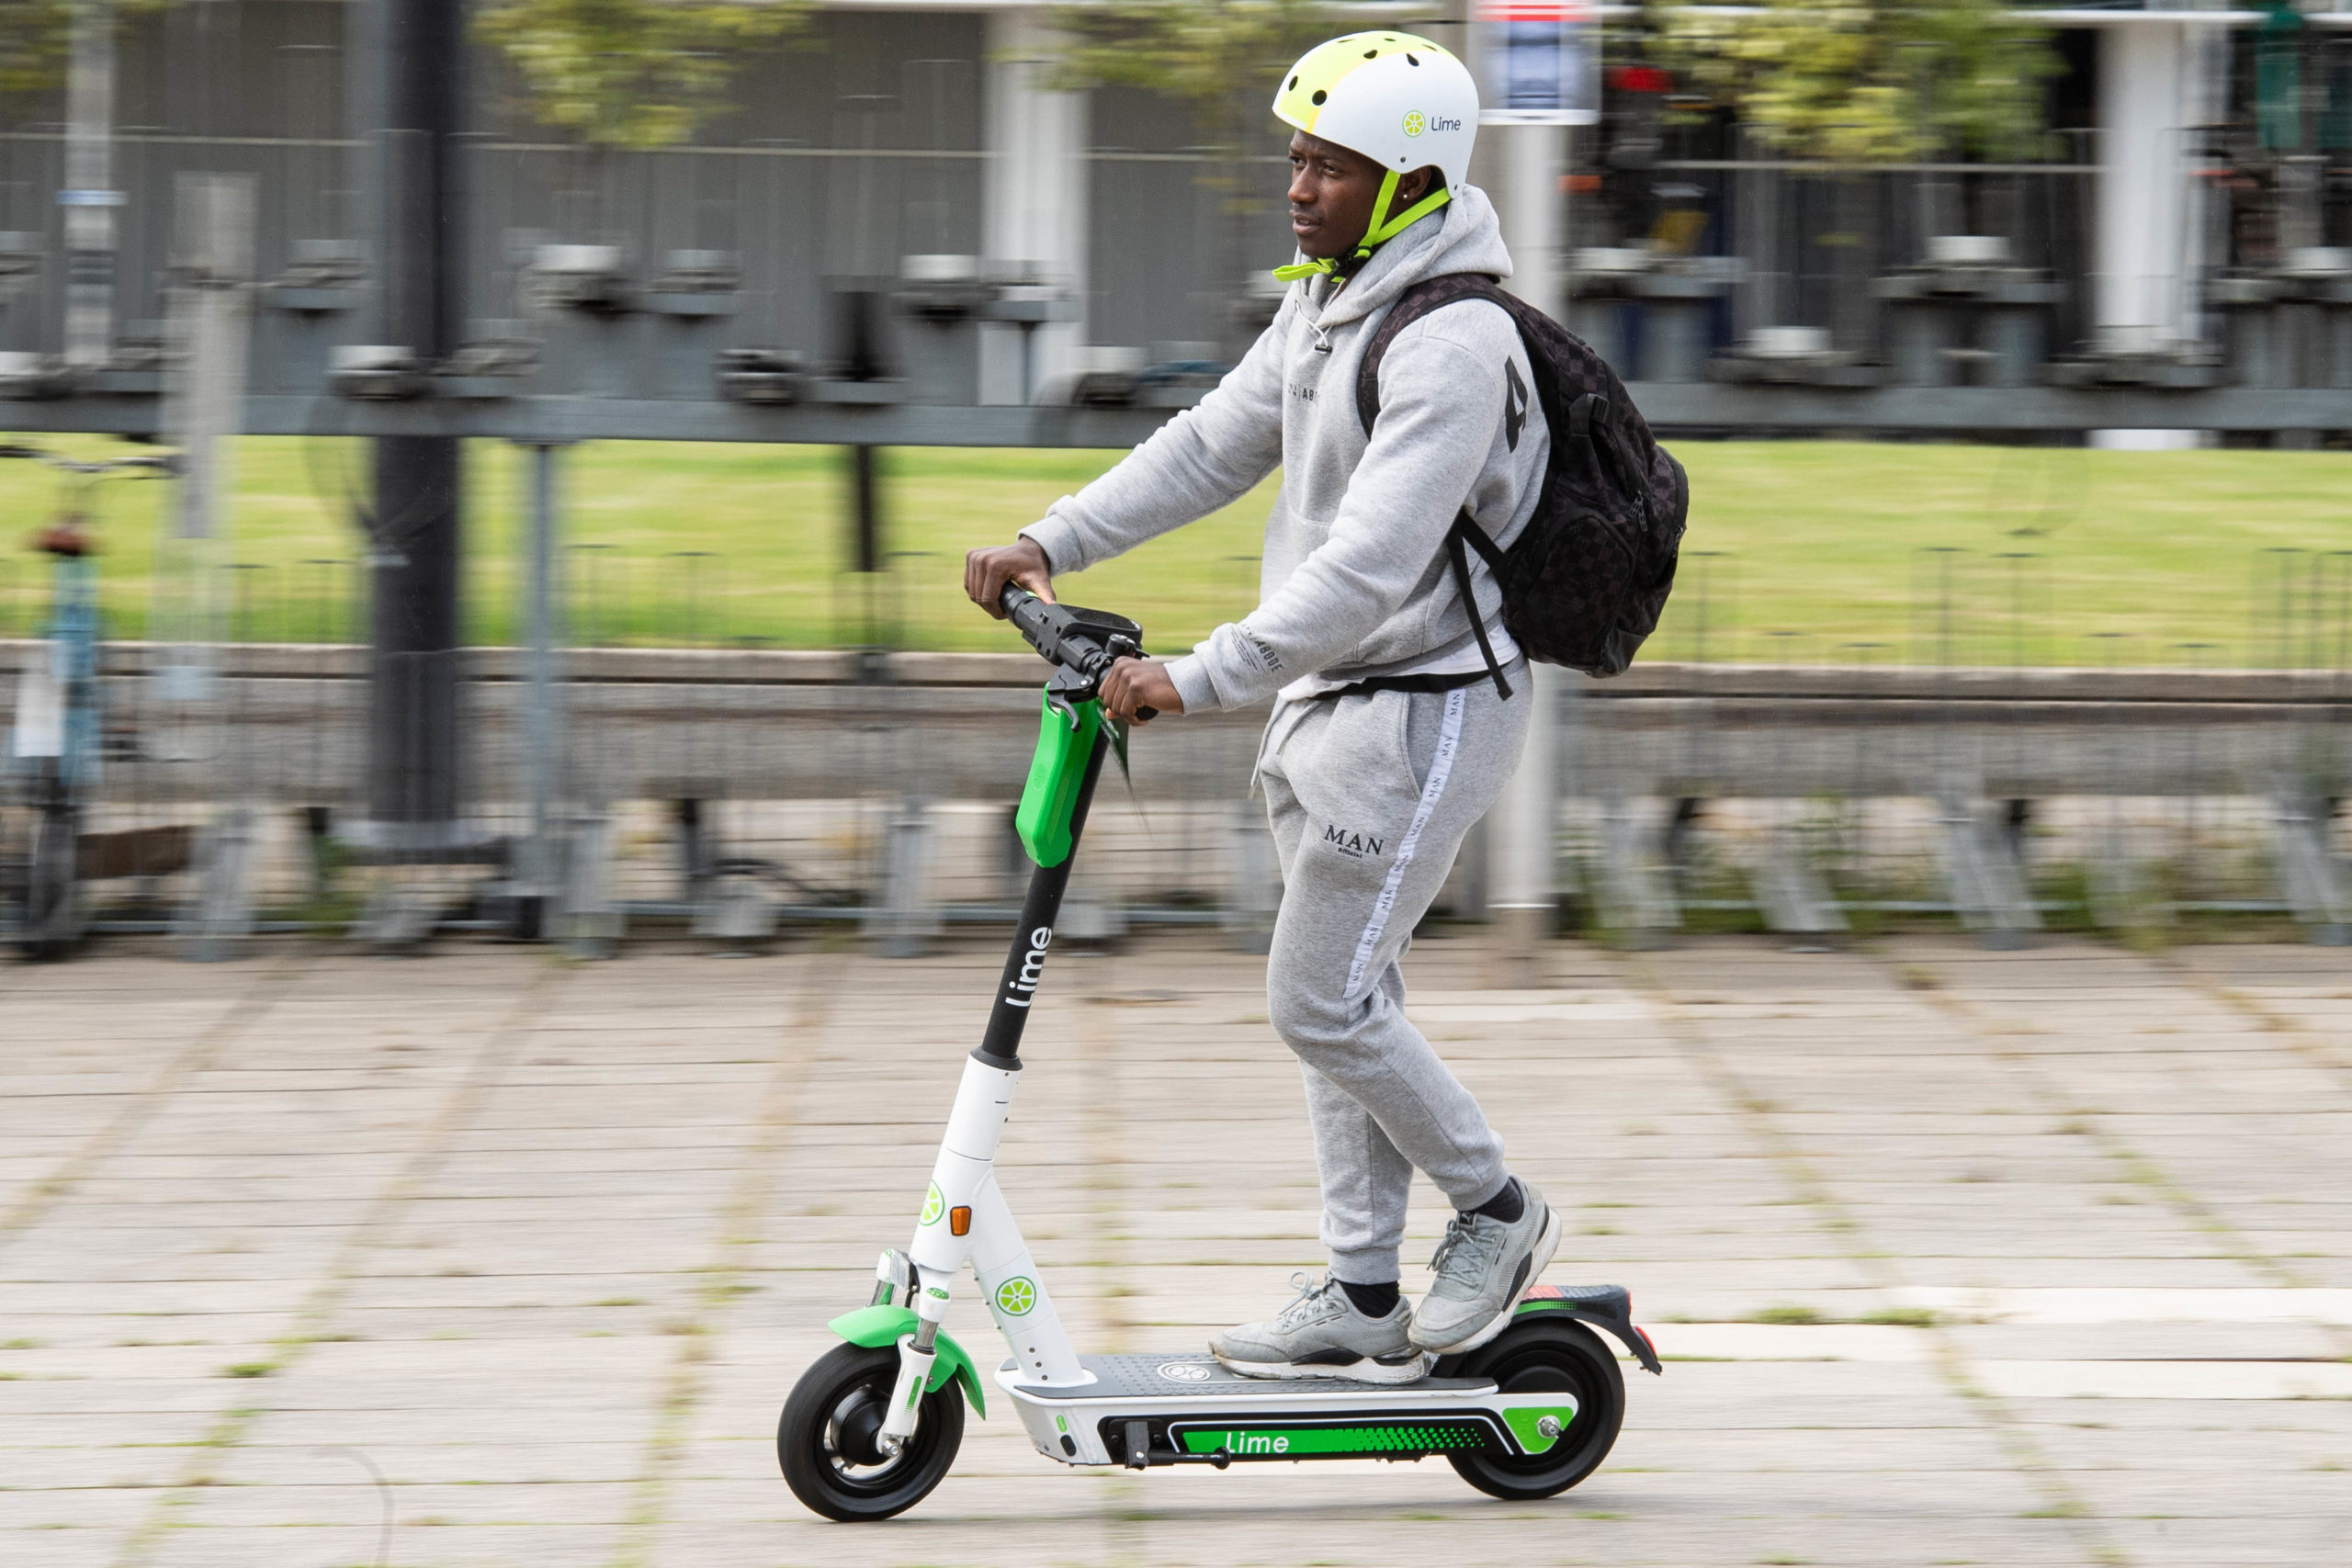 Lime Bikes & e-Scooters